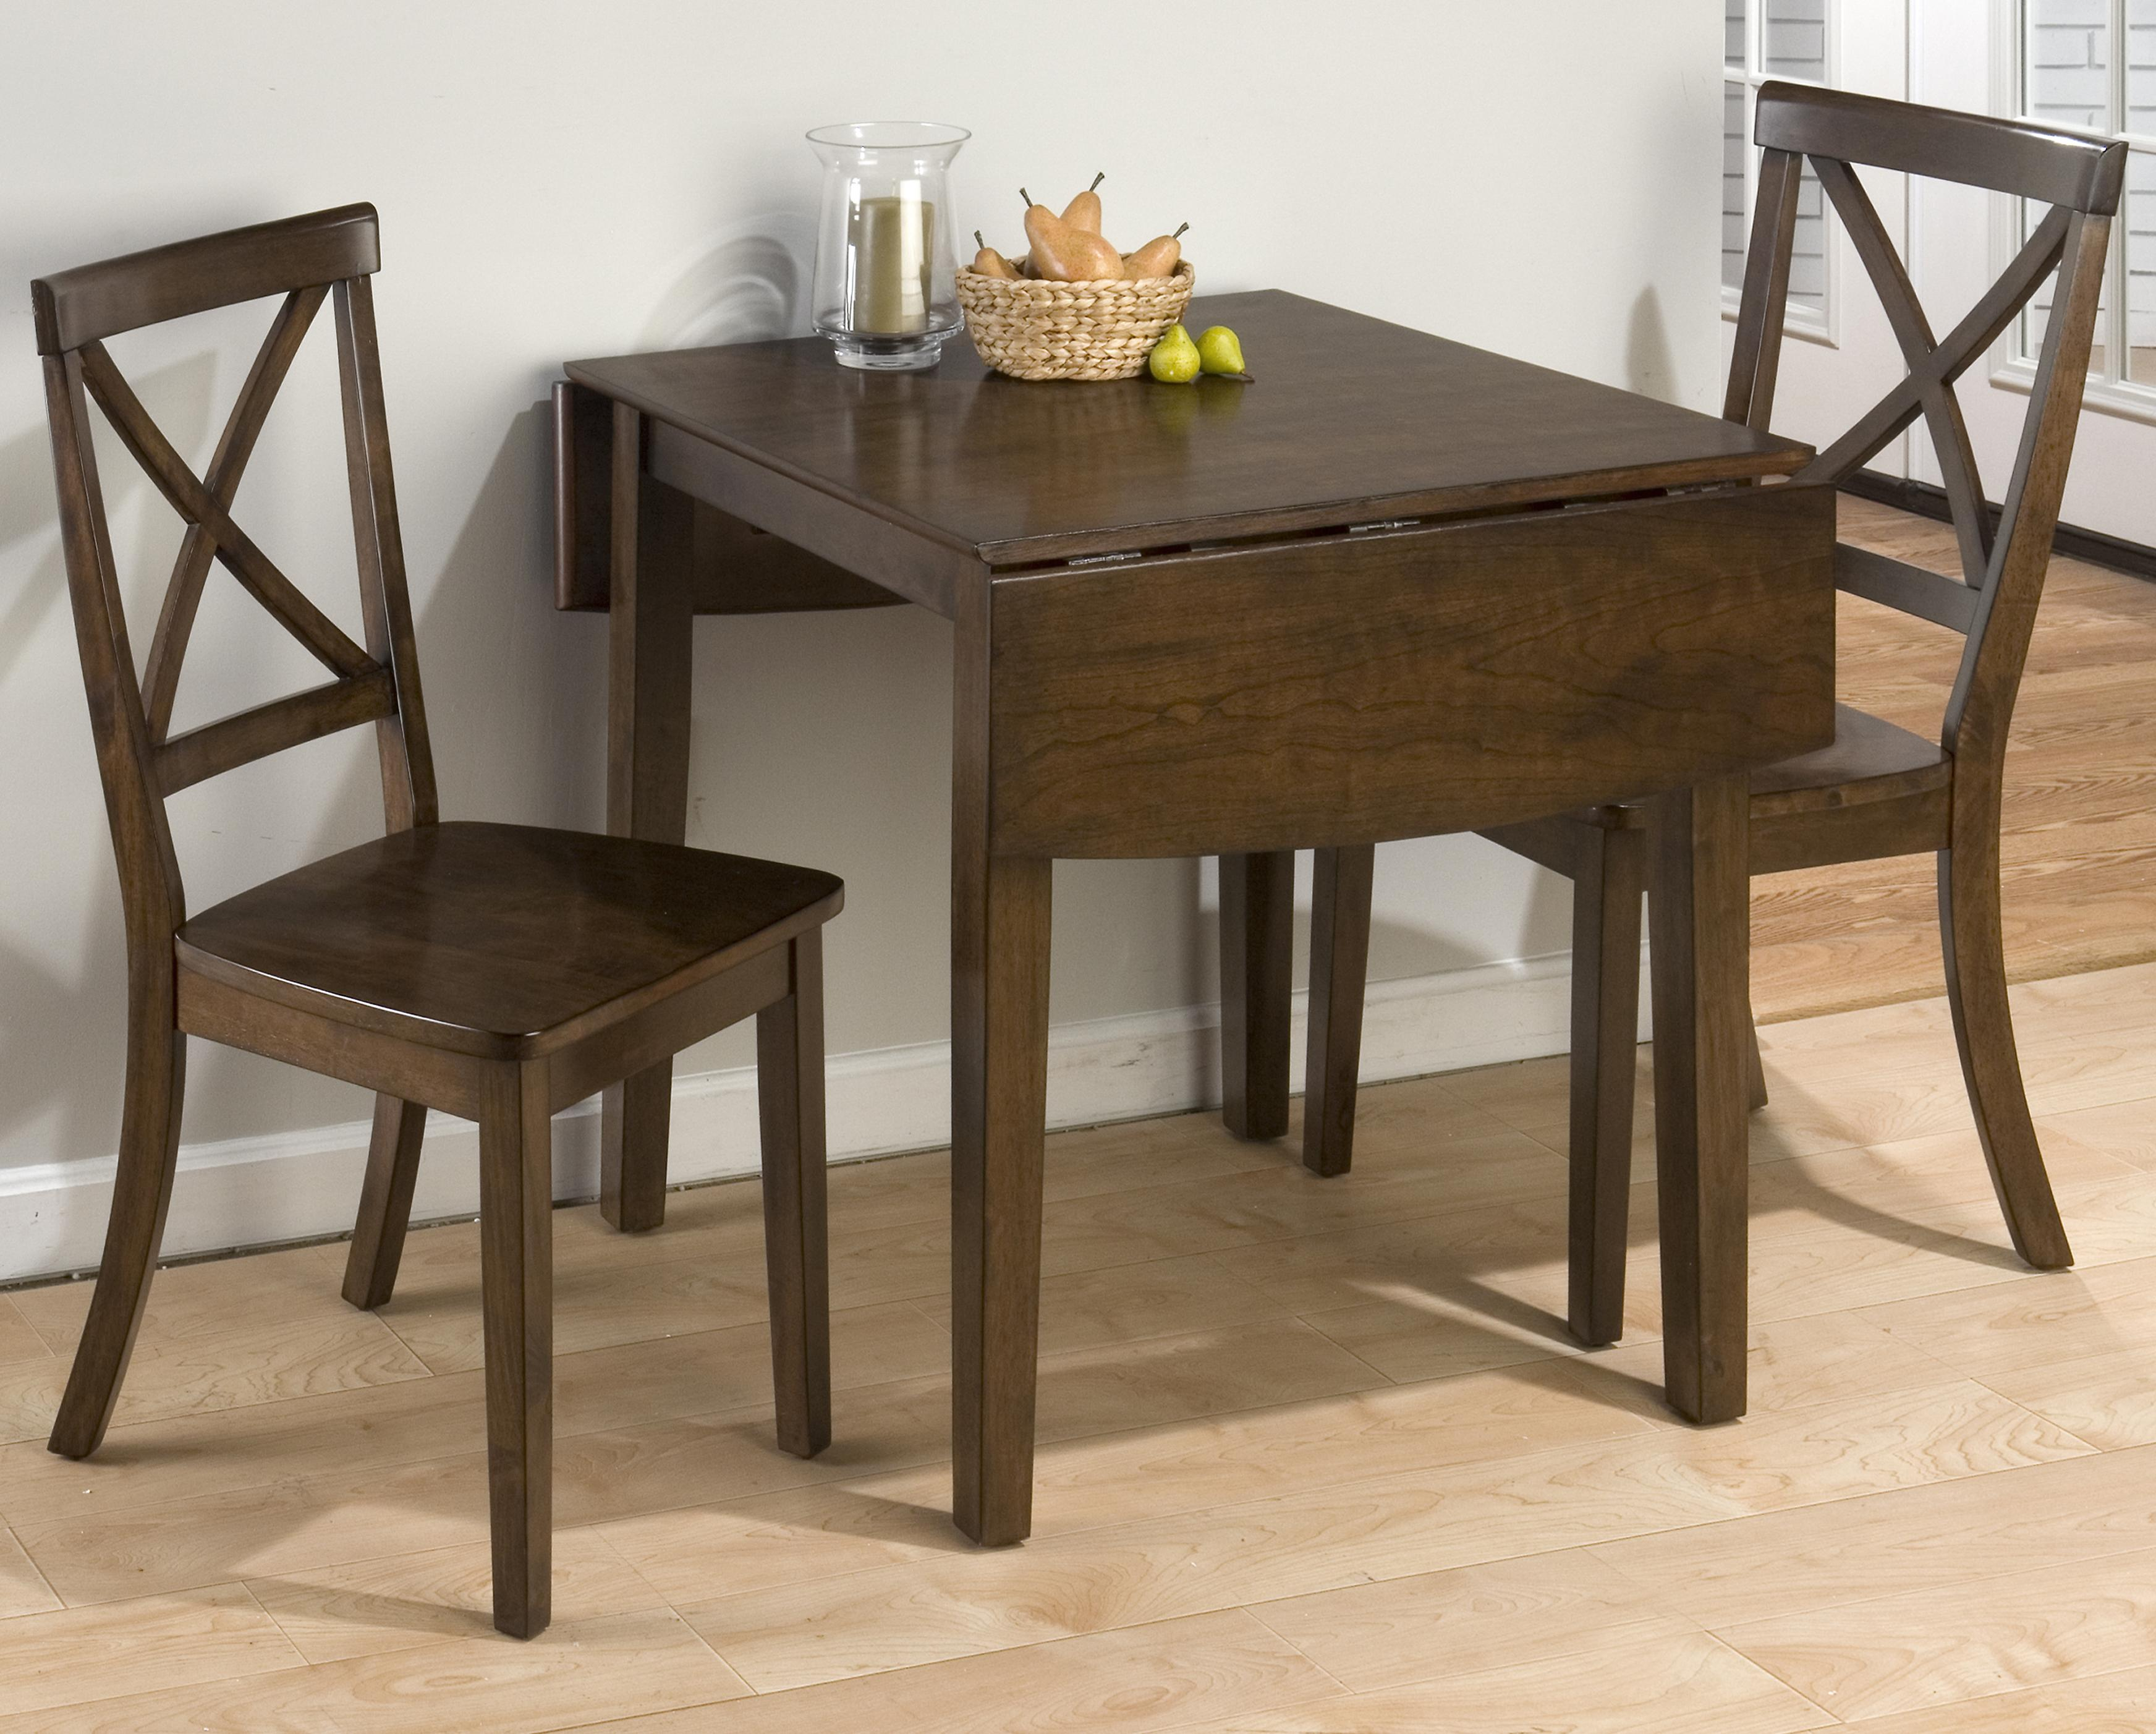 Taylor Cherry 3-Piece Dining Set by Jofran at Lindy's Furniture Company